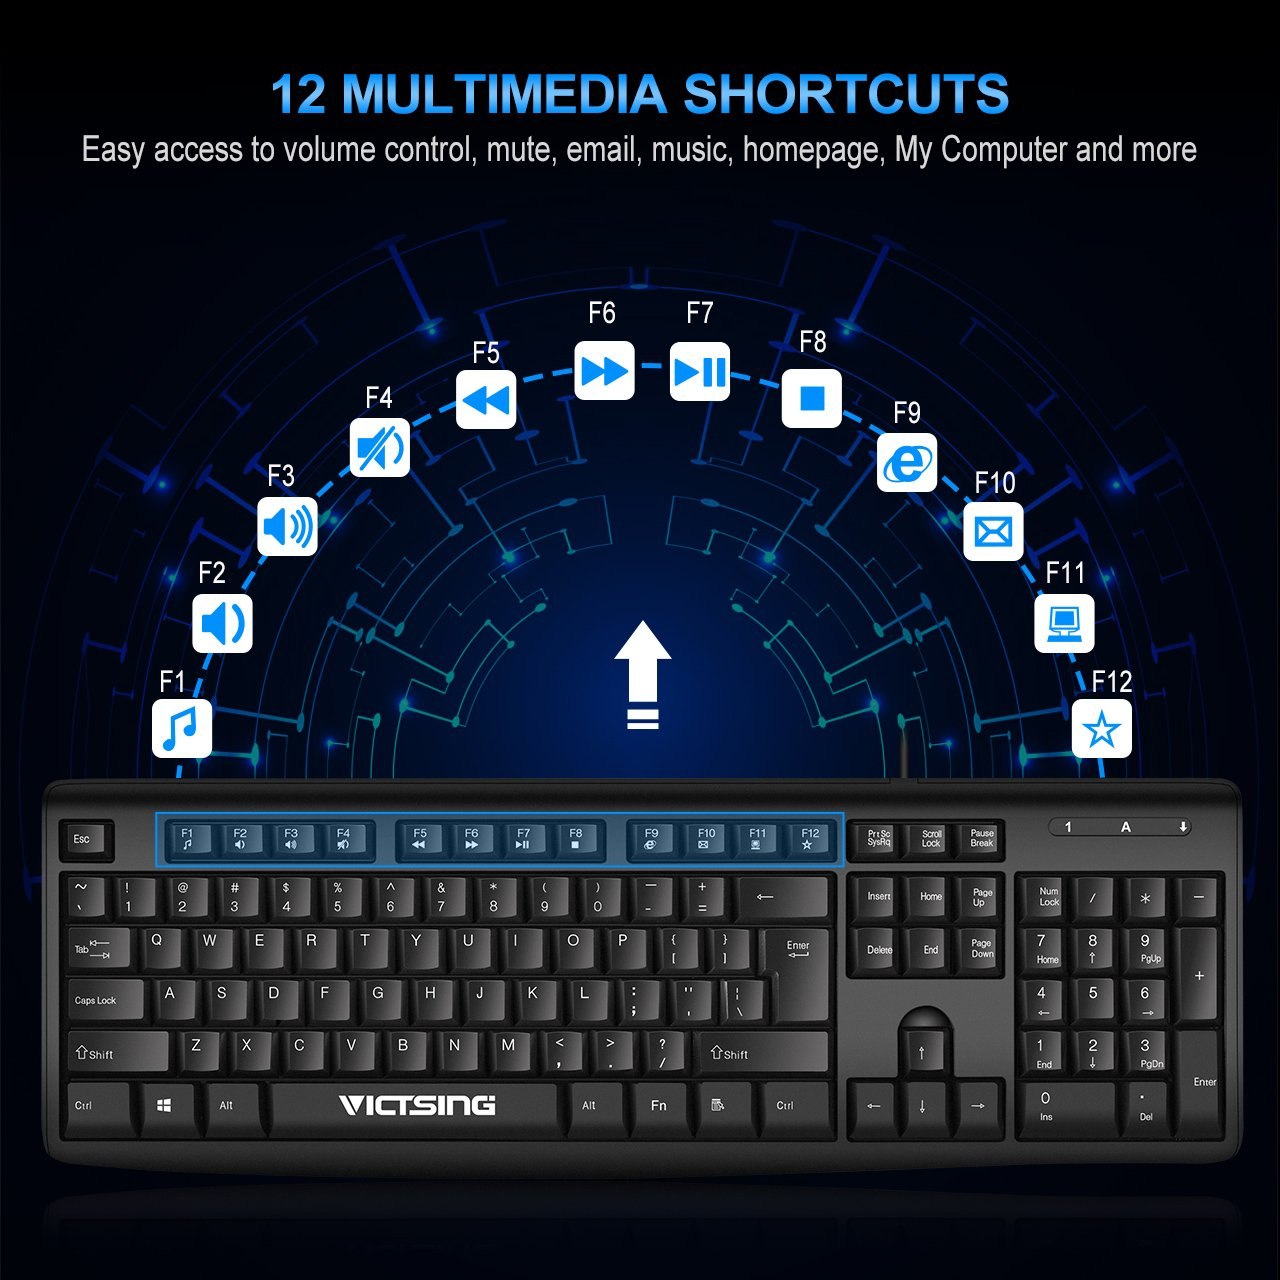 VicTsing Spill-Resistant Wired Keyboard, Computer USB Keyboard with 5 Feet USB Cable and Foldable Stands, Support Windows 10/8/7/Vista/XP, Mac, Linux, Black by VicTsing (Image #3)